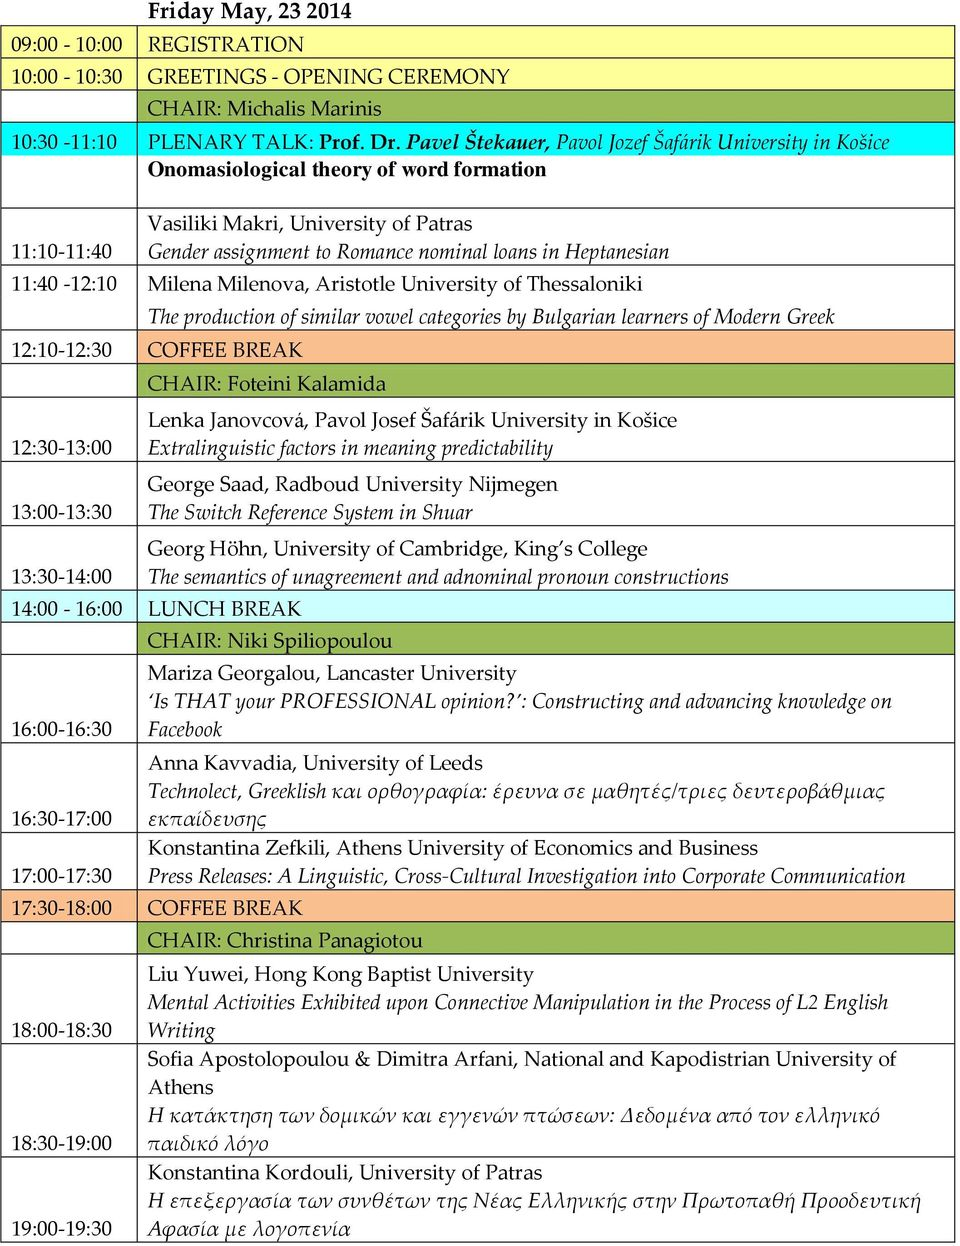 Heptanesian 11:40-12:10 Milena Milenova, Aristotle University of Thessaloniki The production of similar vowel categories by Bulgarian learners of Modern Greek 12:10-12:30 COFFEE BREAK 12:30-13:00